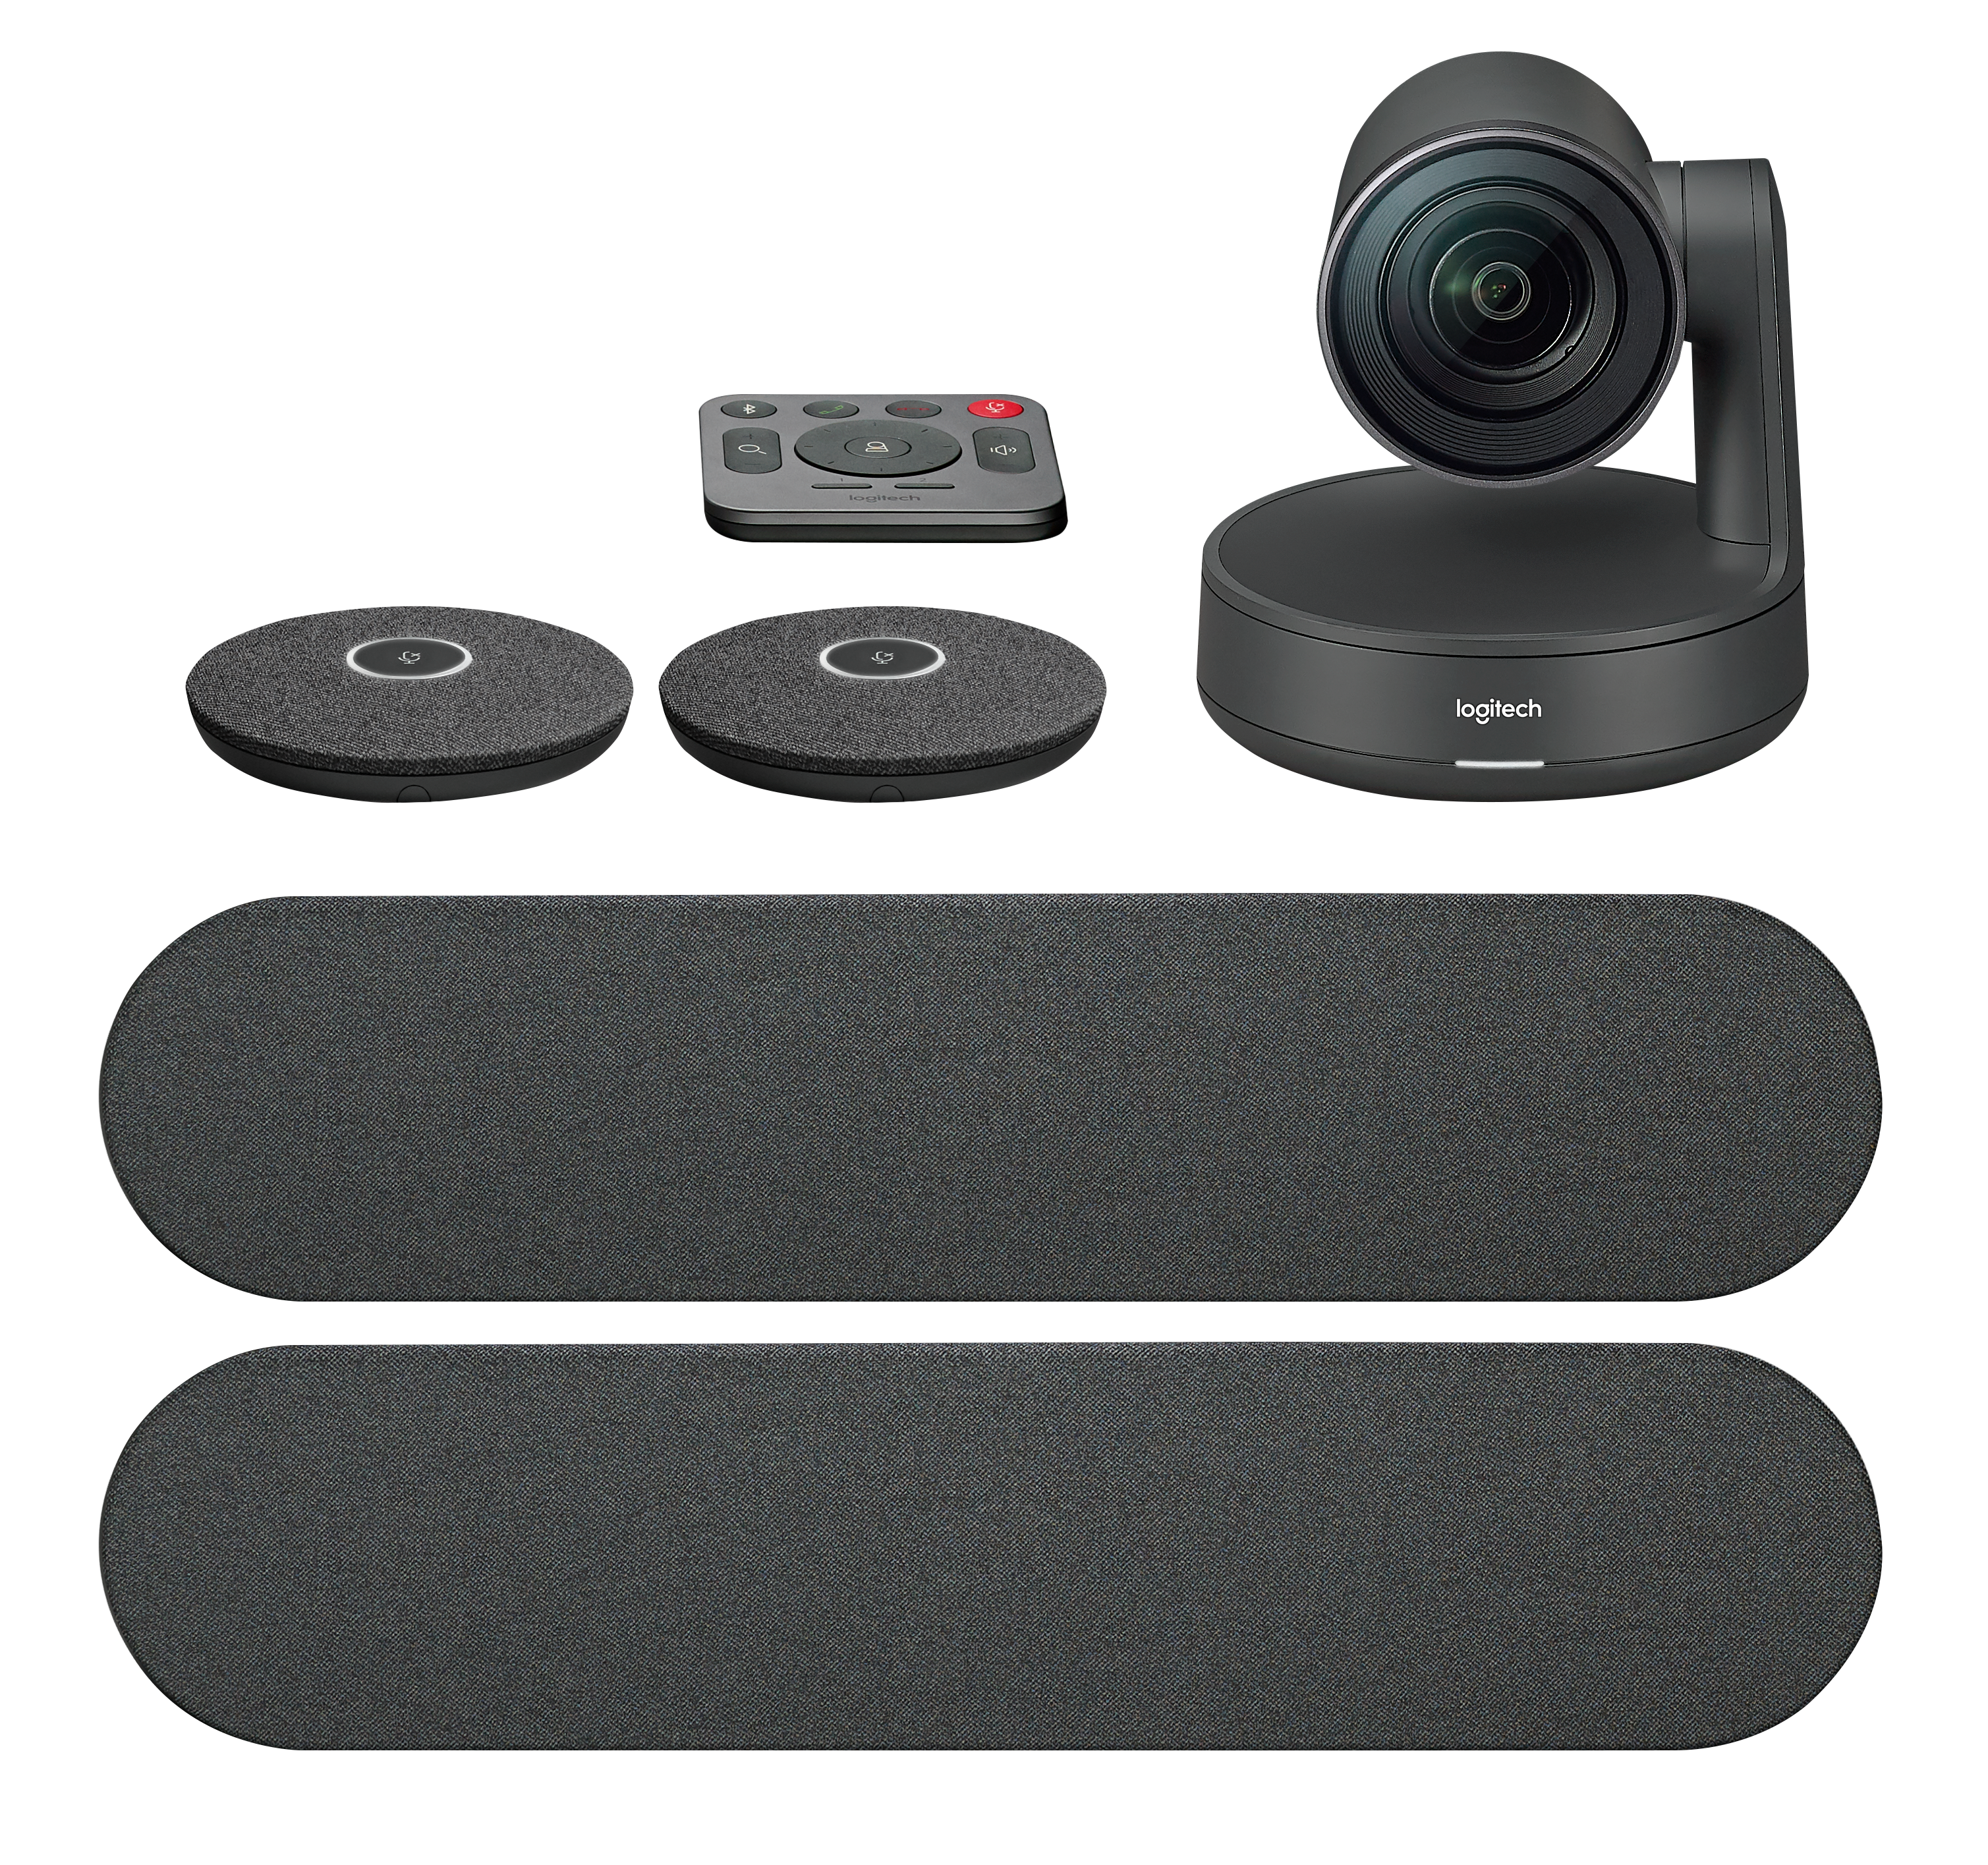 Logitech Rally Plus product image